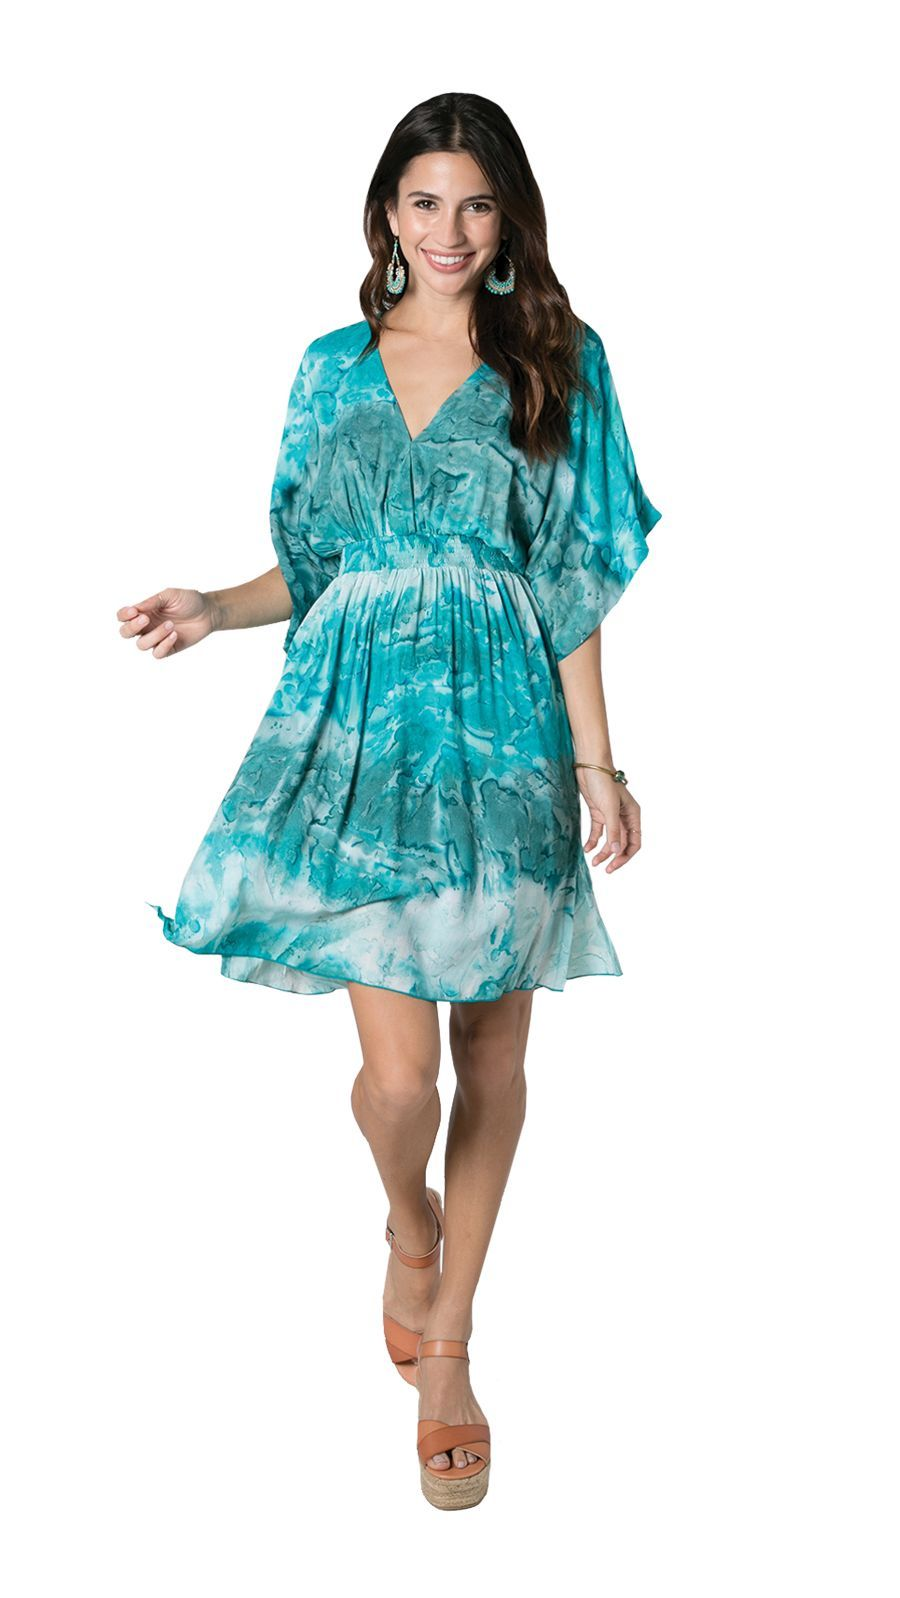 Flynn Dress -Teal Tie Dye - Front